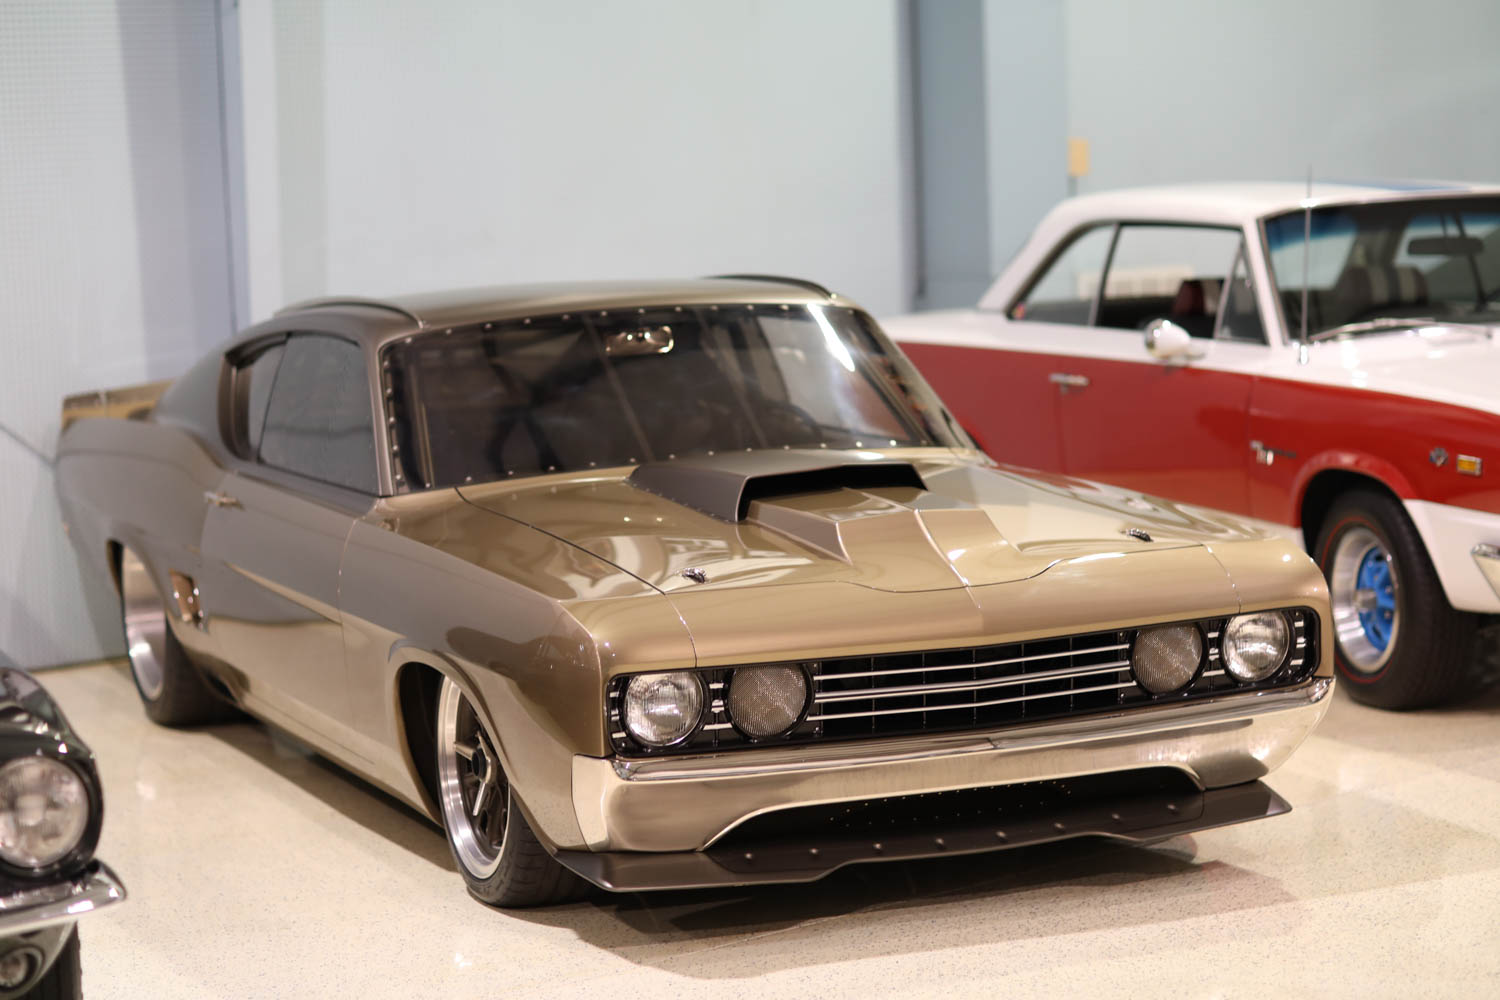 Built by Rad Rides by Troy as an homage to the Torino Talladega, this restomod is powered by a Jon Kaase Boss Nine V-8.